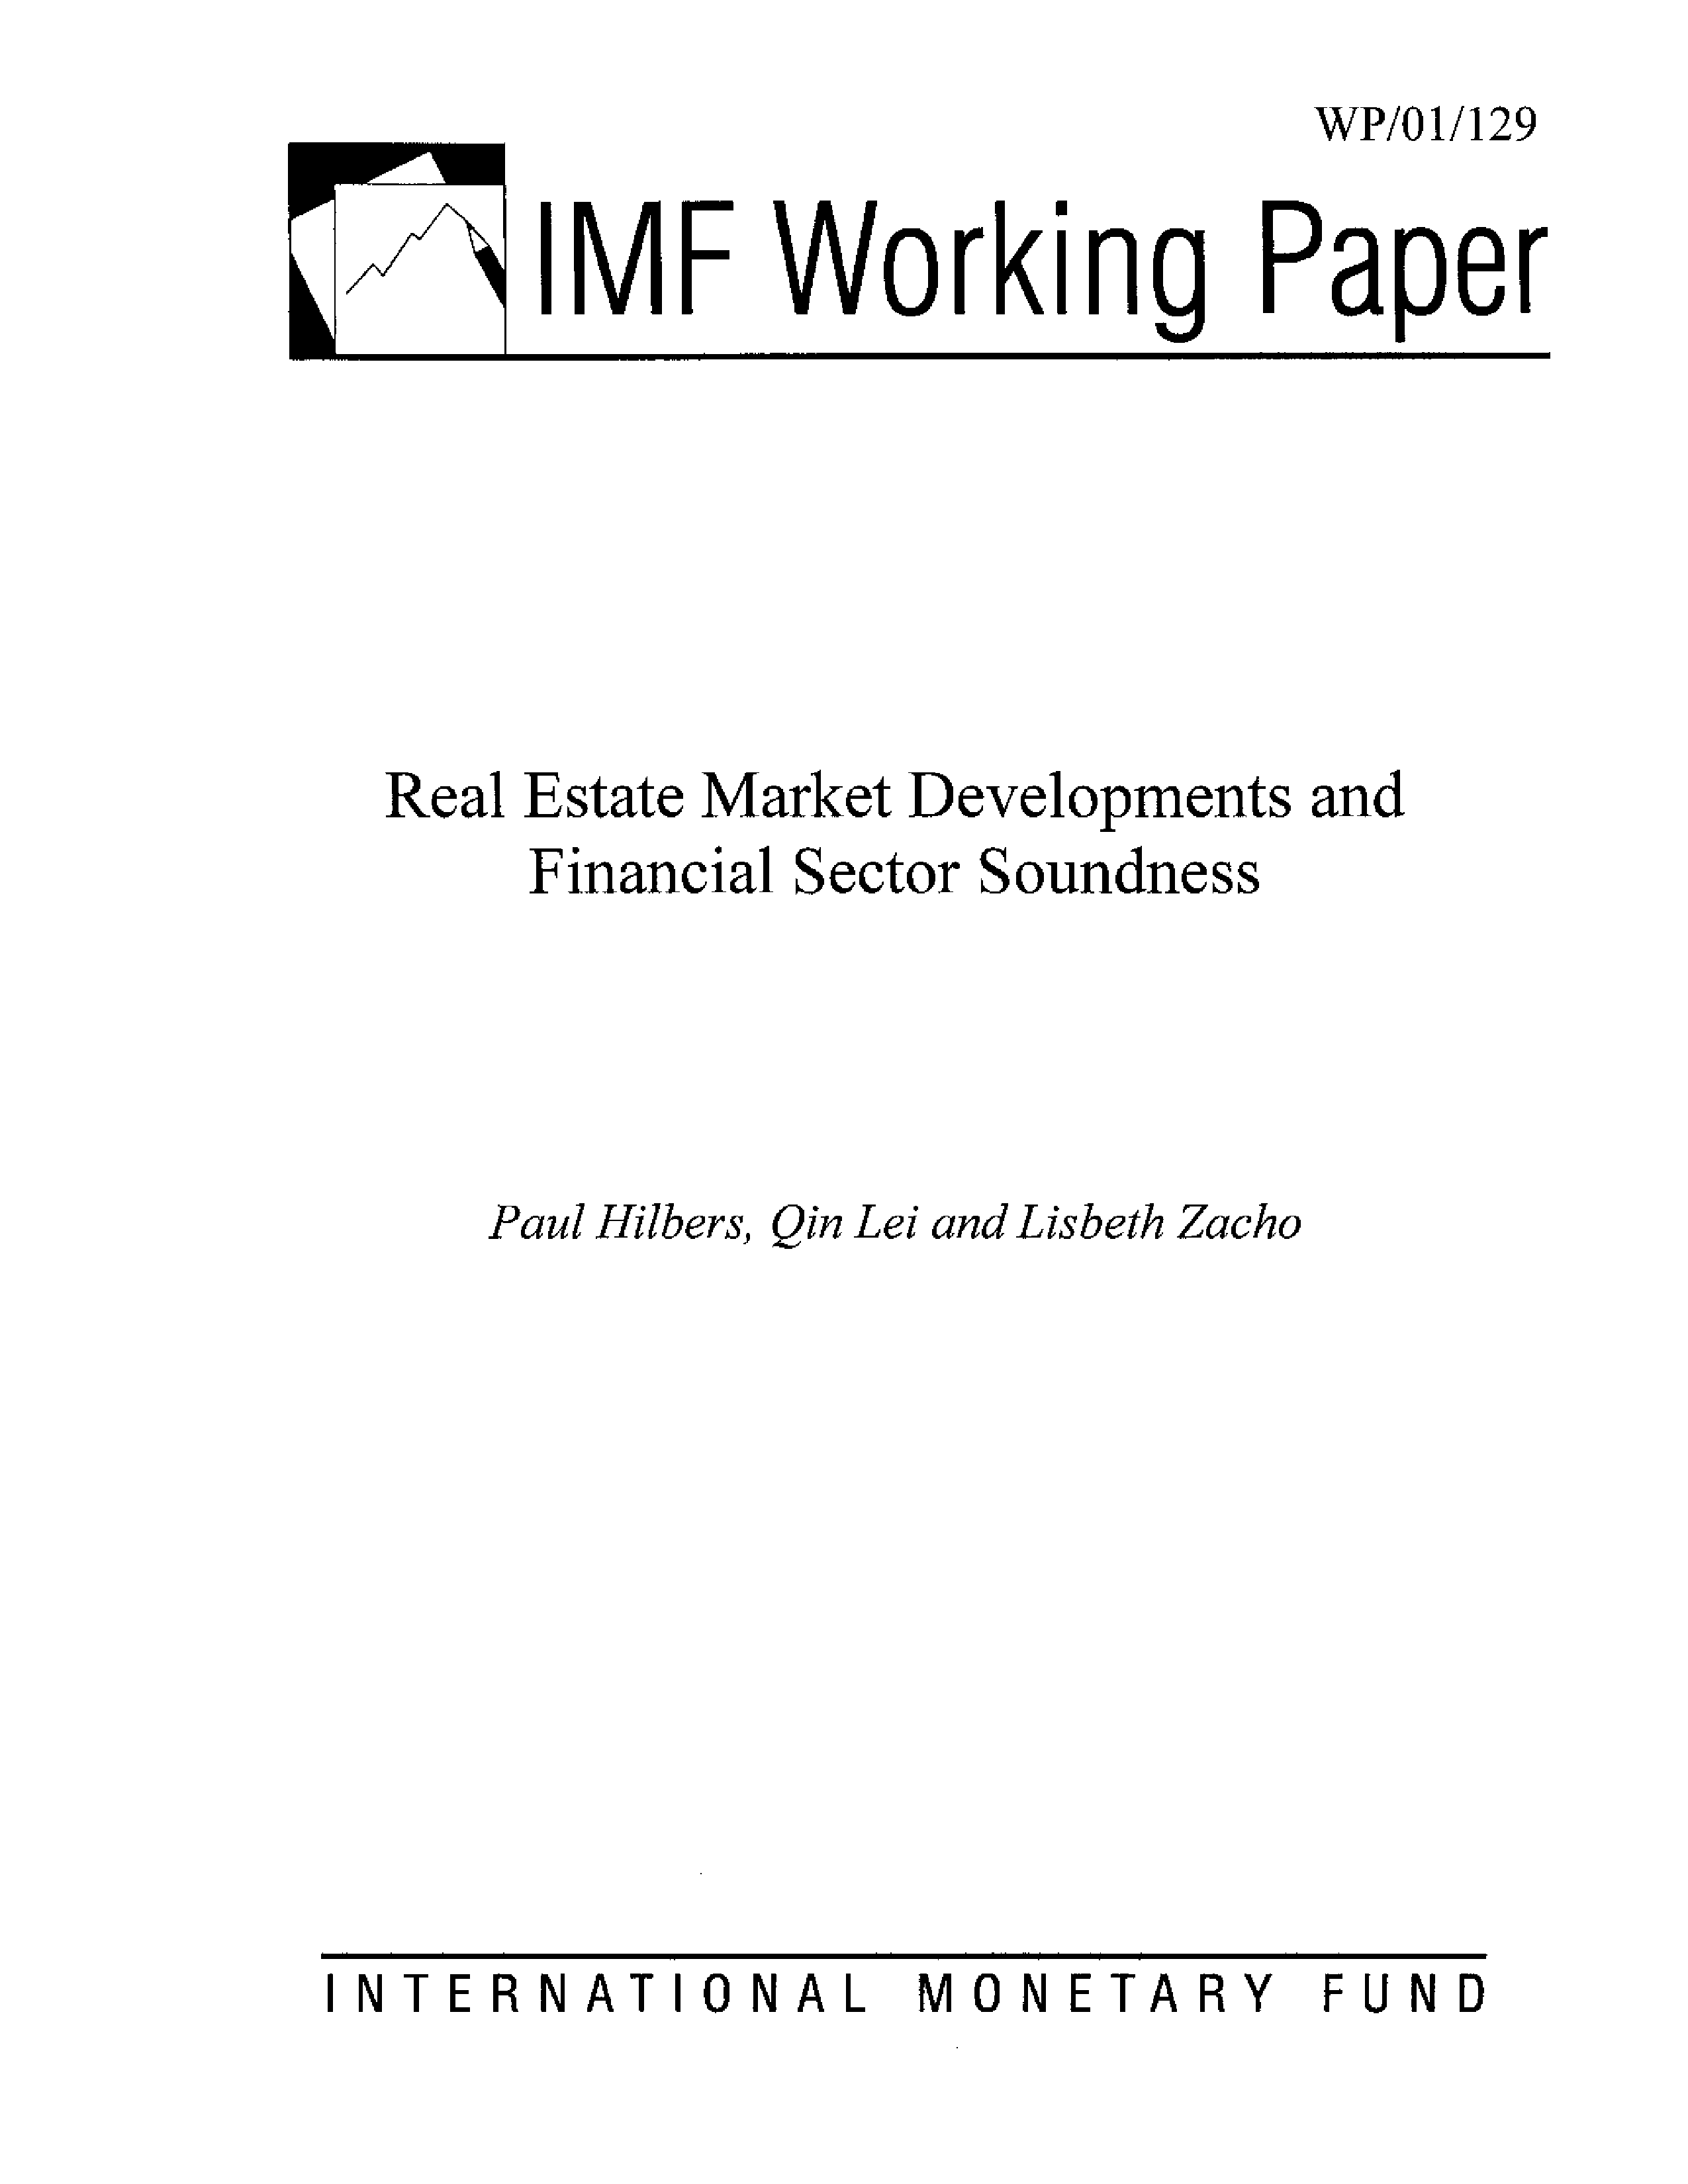 Real Estate Project Finance Report | Templates at